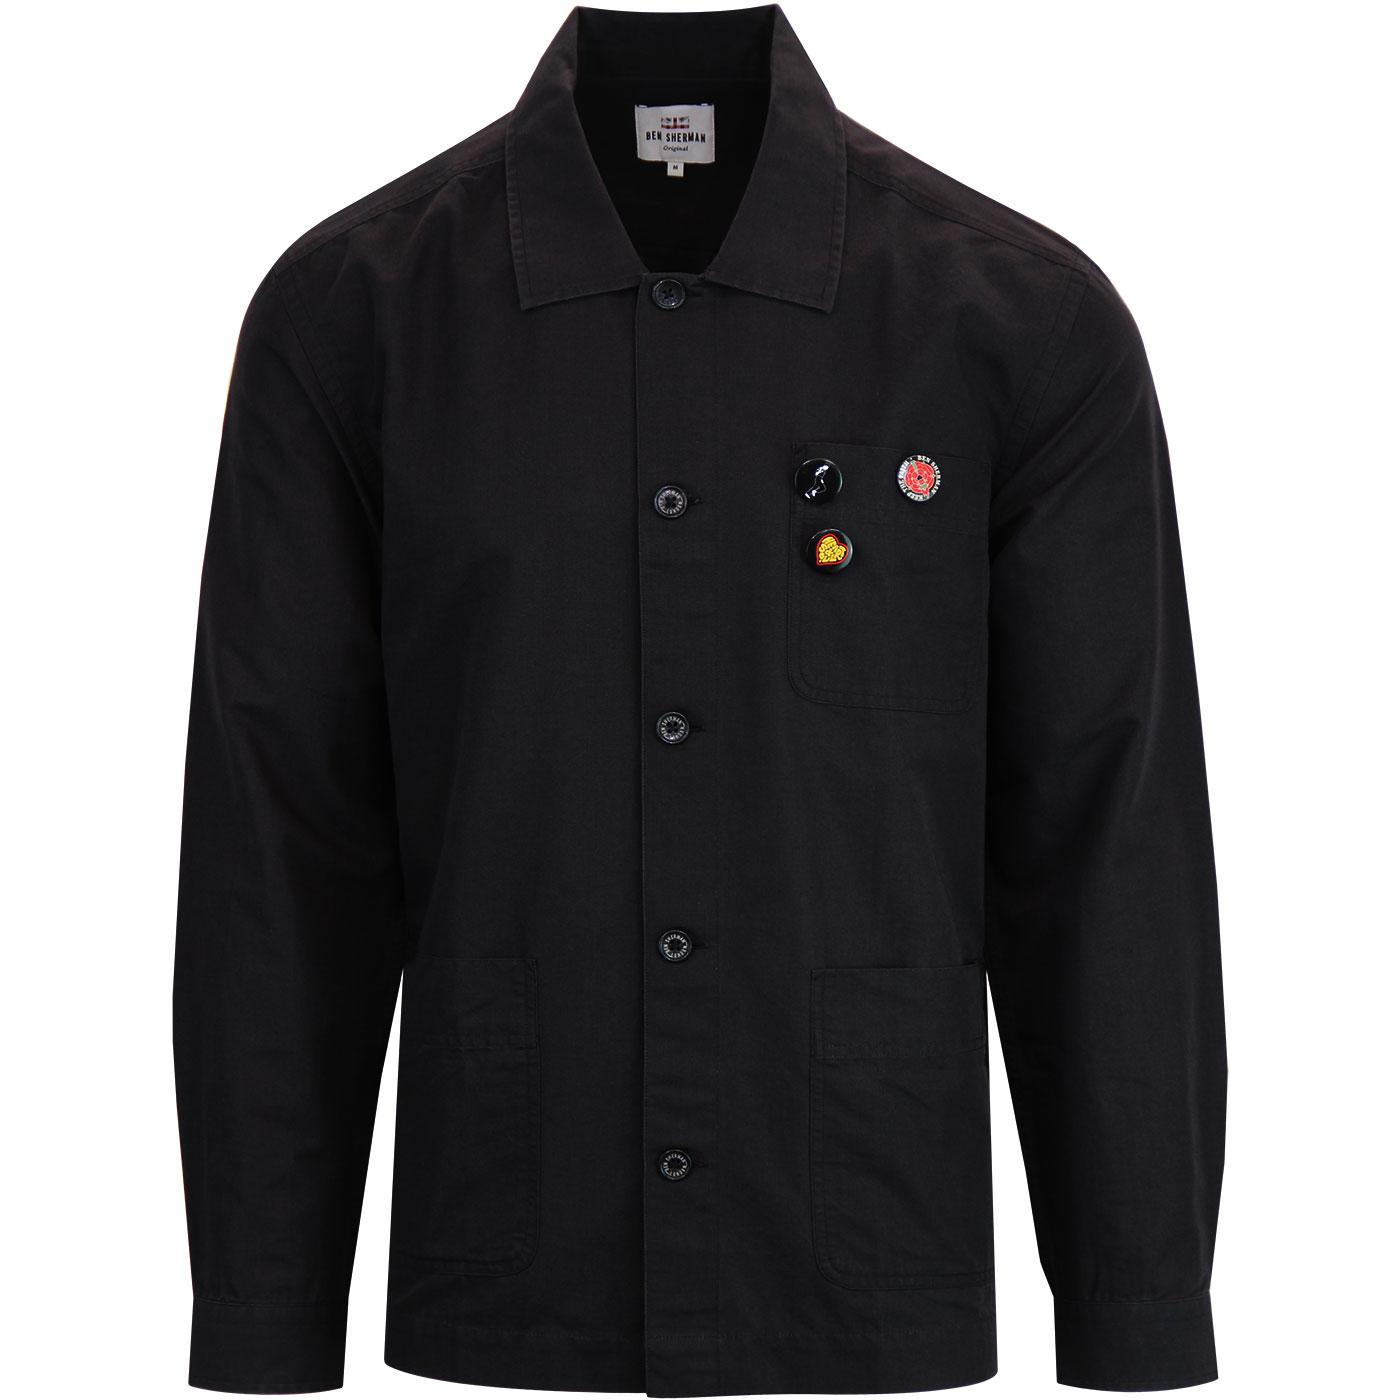 BEN SHERMAN Retro Mod Northern Soul Overshirt B